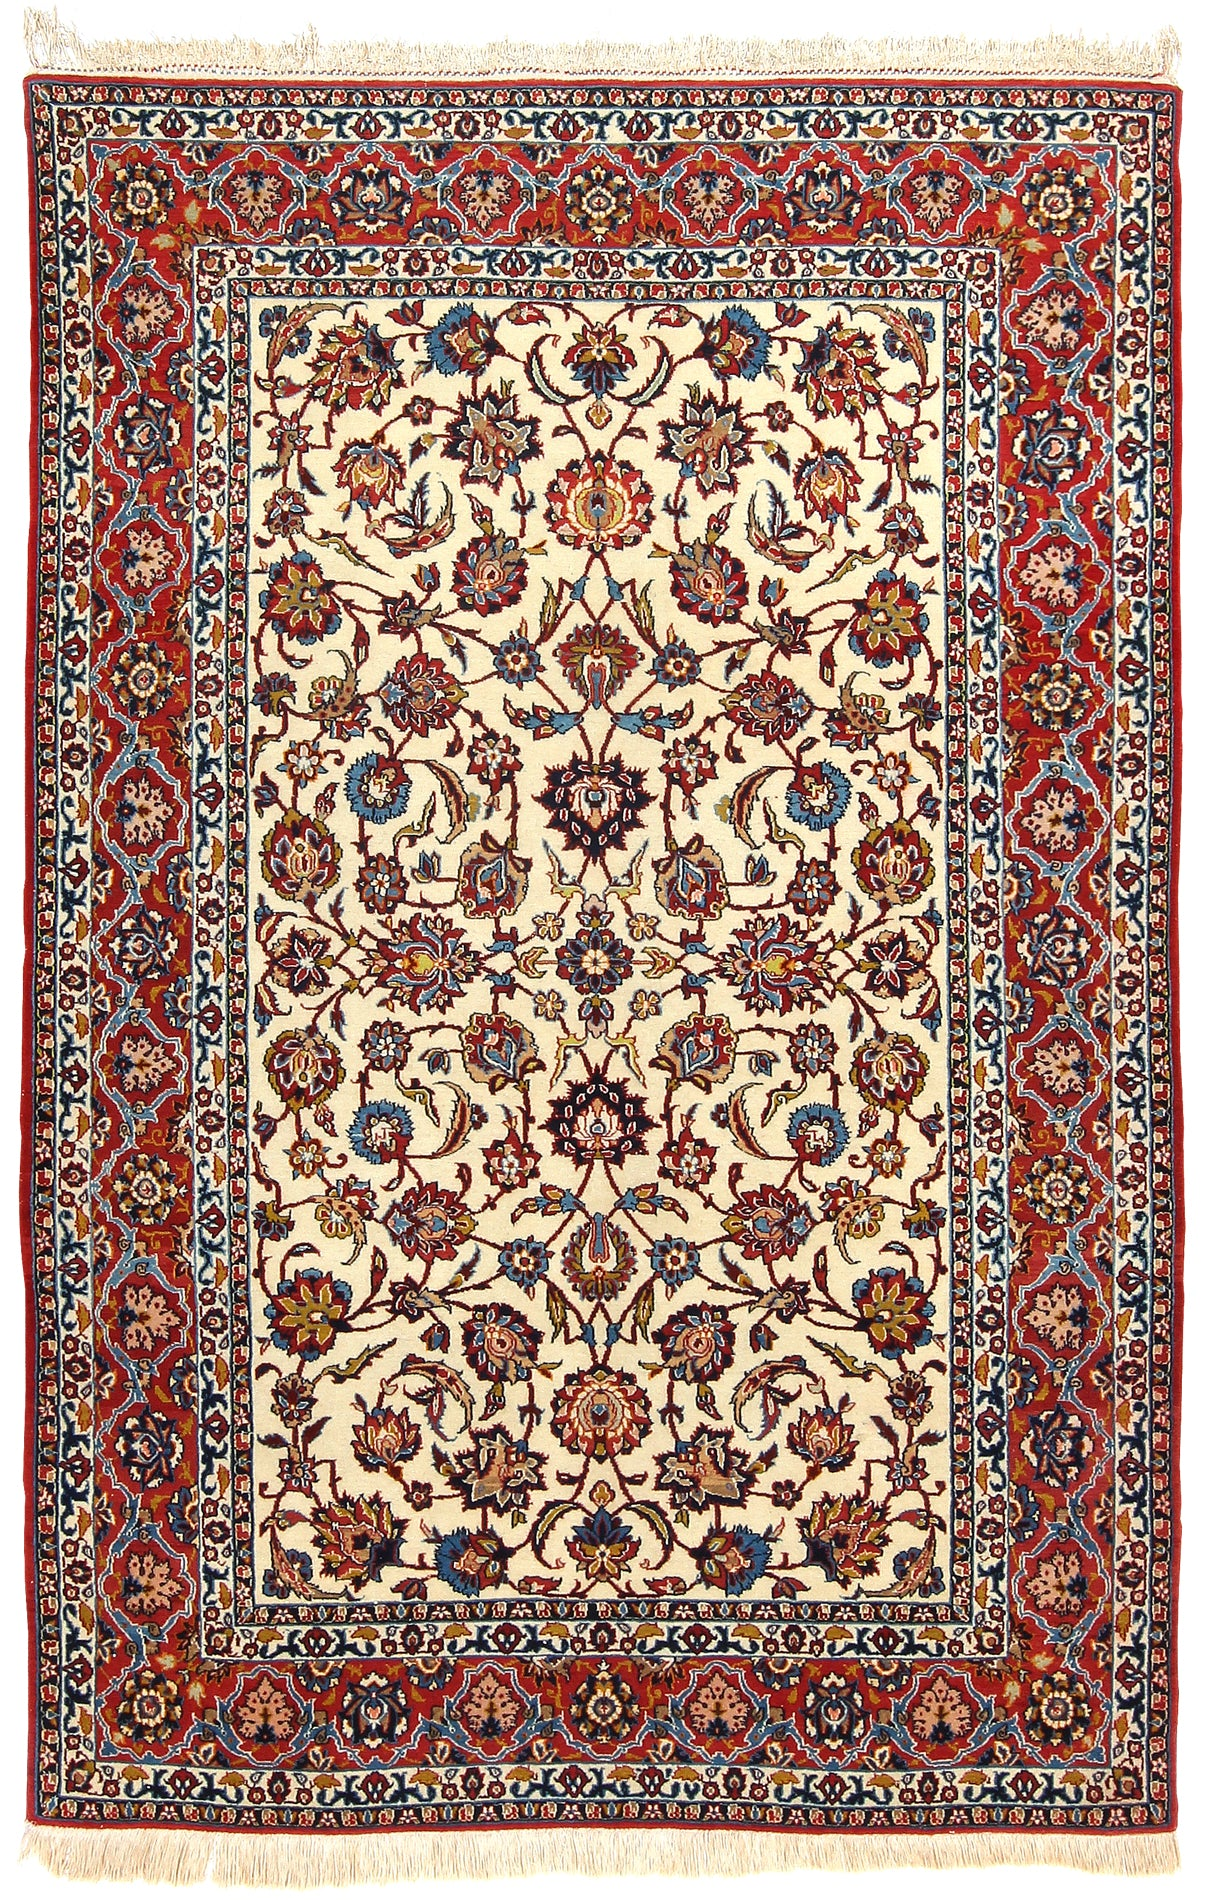 Isfahan Rug Semi-Antique-Turco Persian Rug Company Inc.